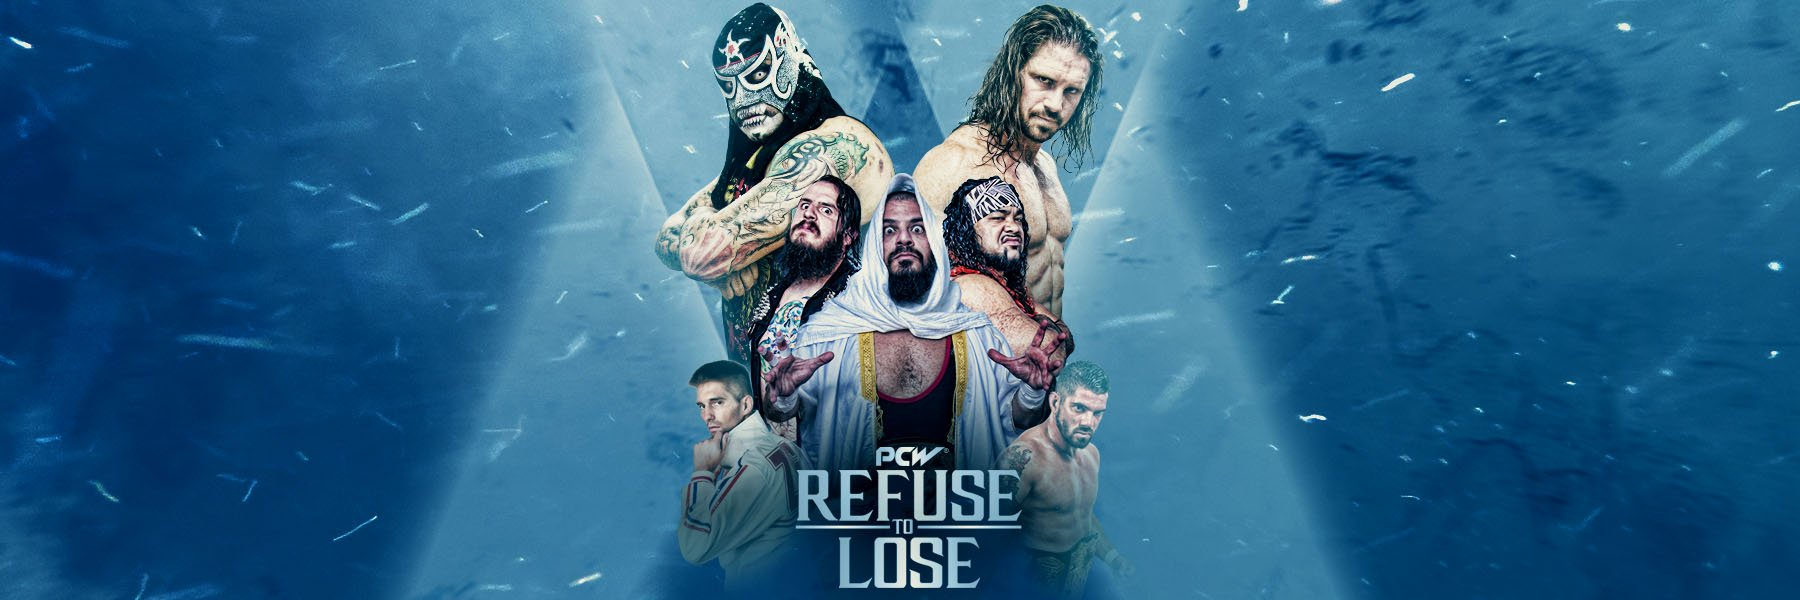 PCW ULTRA | REFUSE TO LOSE: Subscribe $4.99 mo. // Rent $2.99 // Buy $9.99